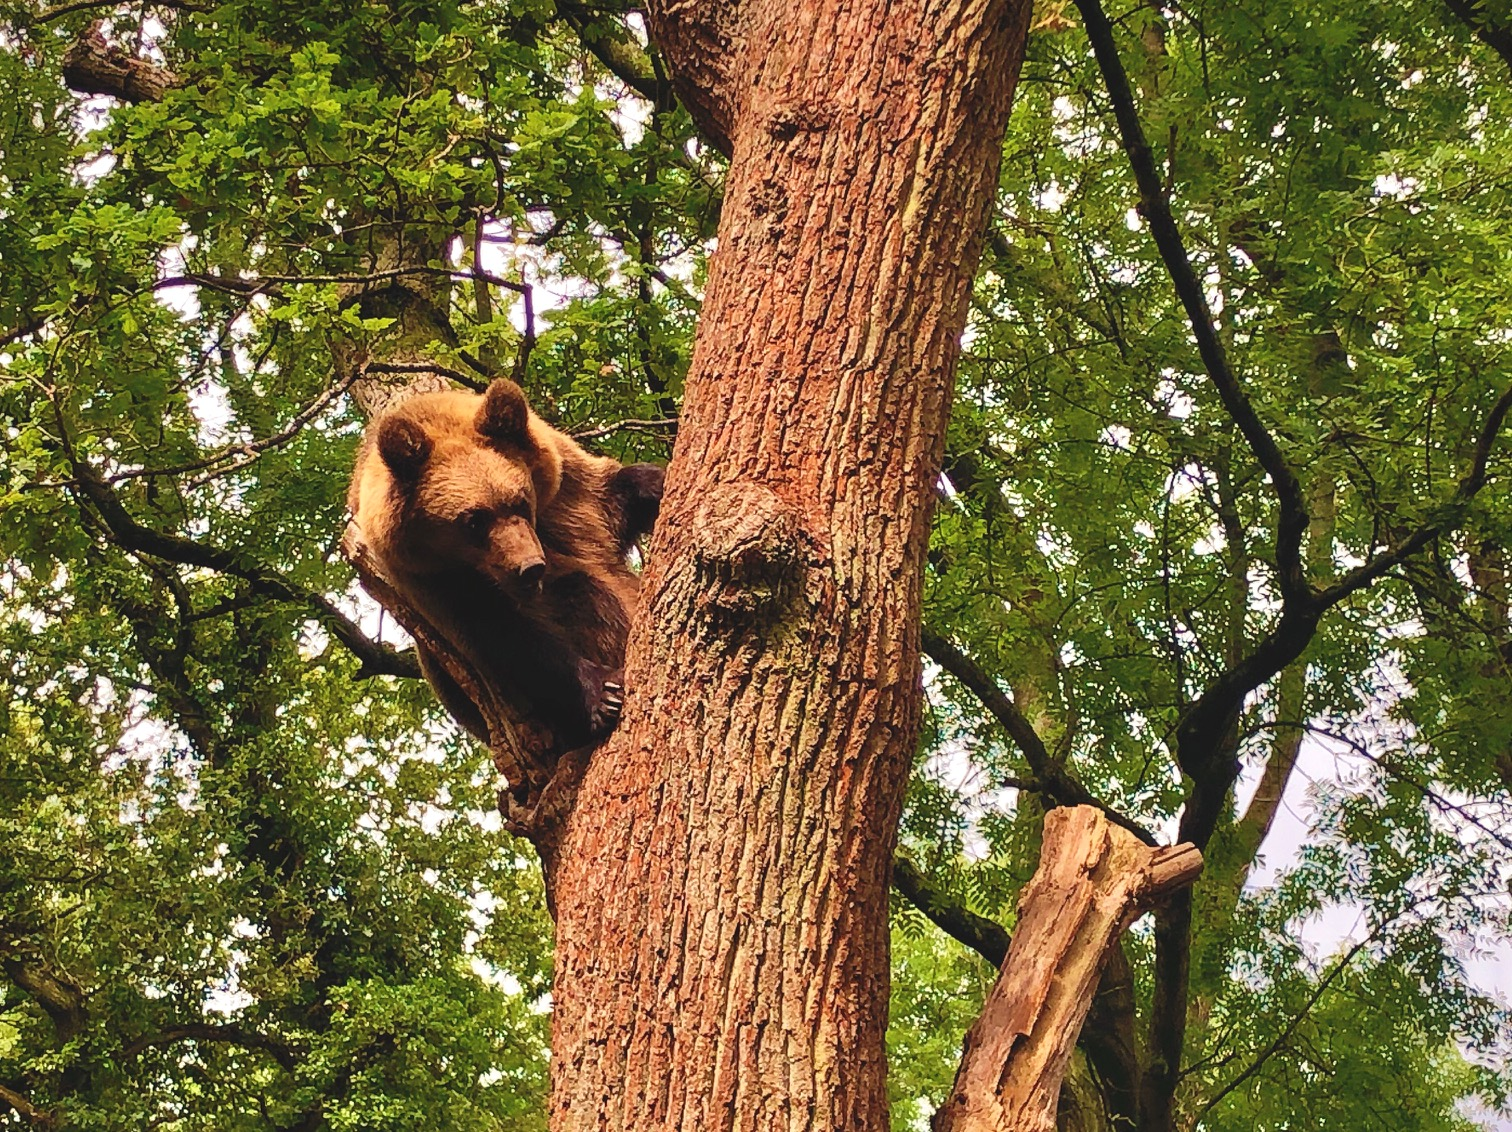 a large brown bear in a tree in bear wood at wild place project